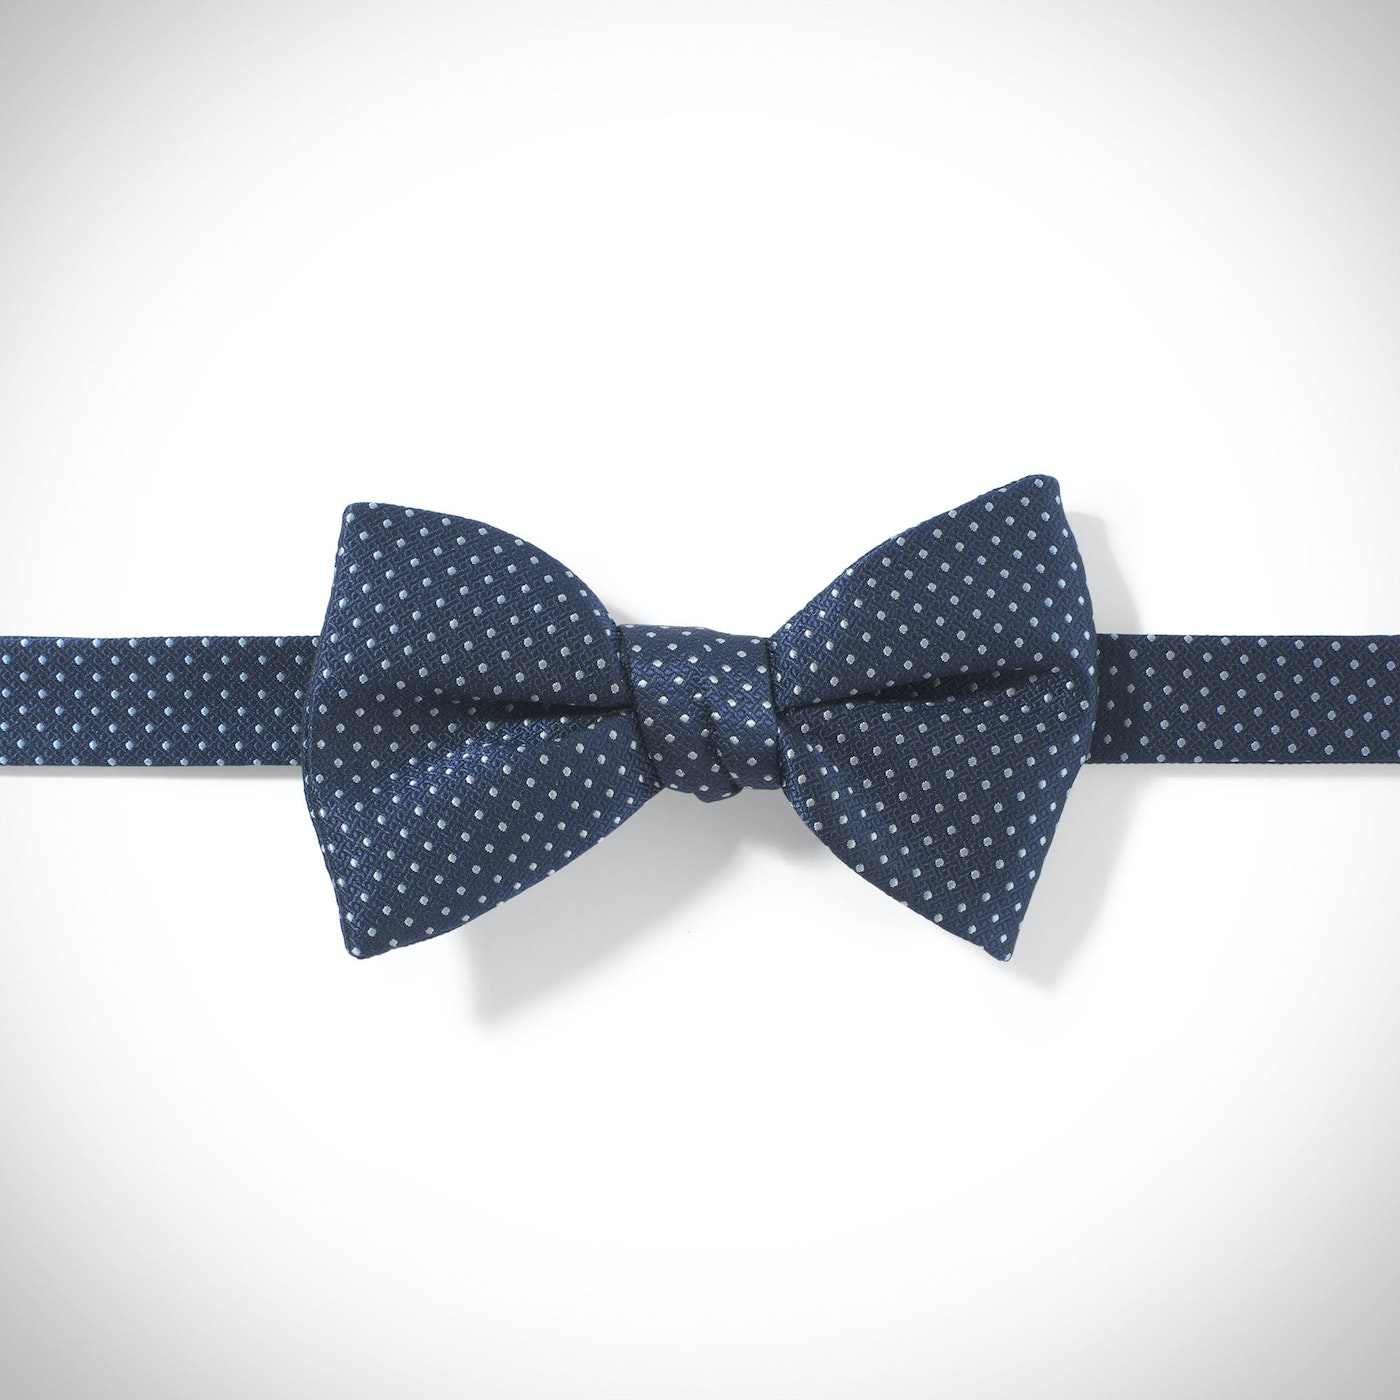 Dark Navy and White Pin Dot Pre-Tied Bow Tie